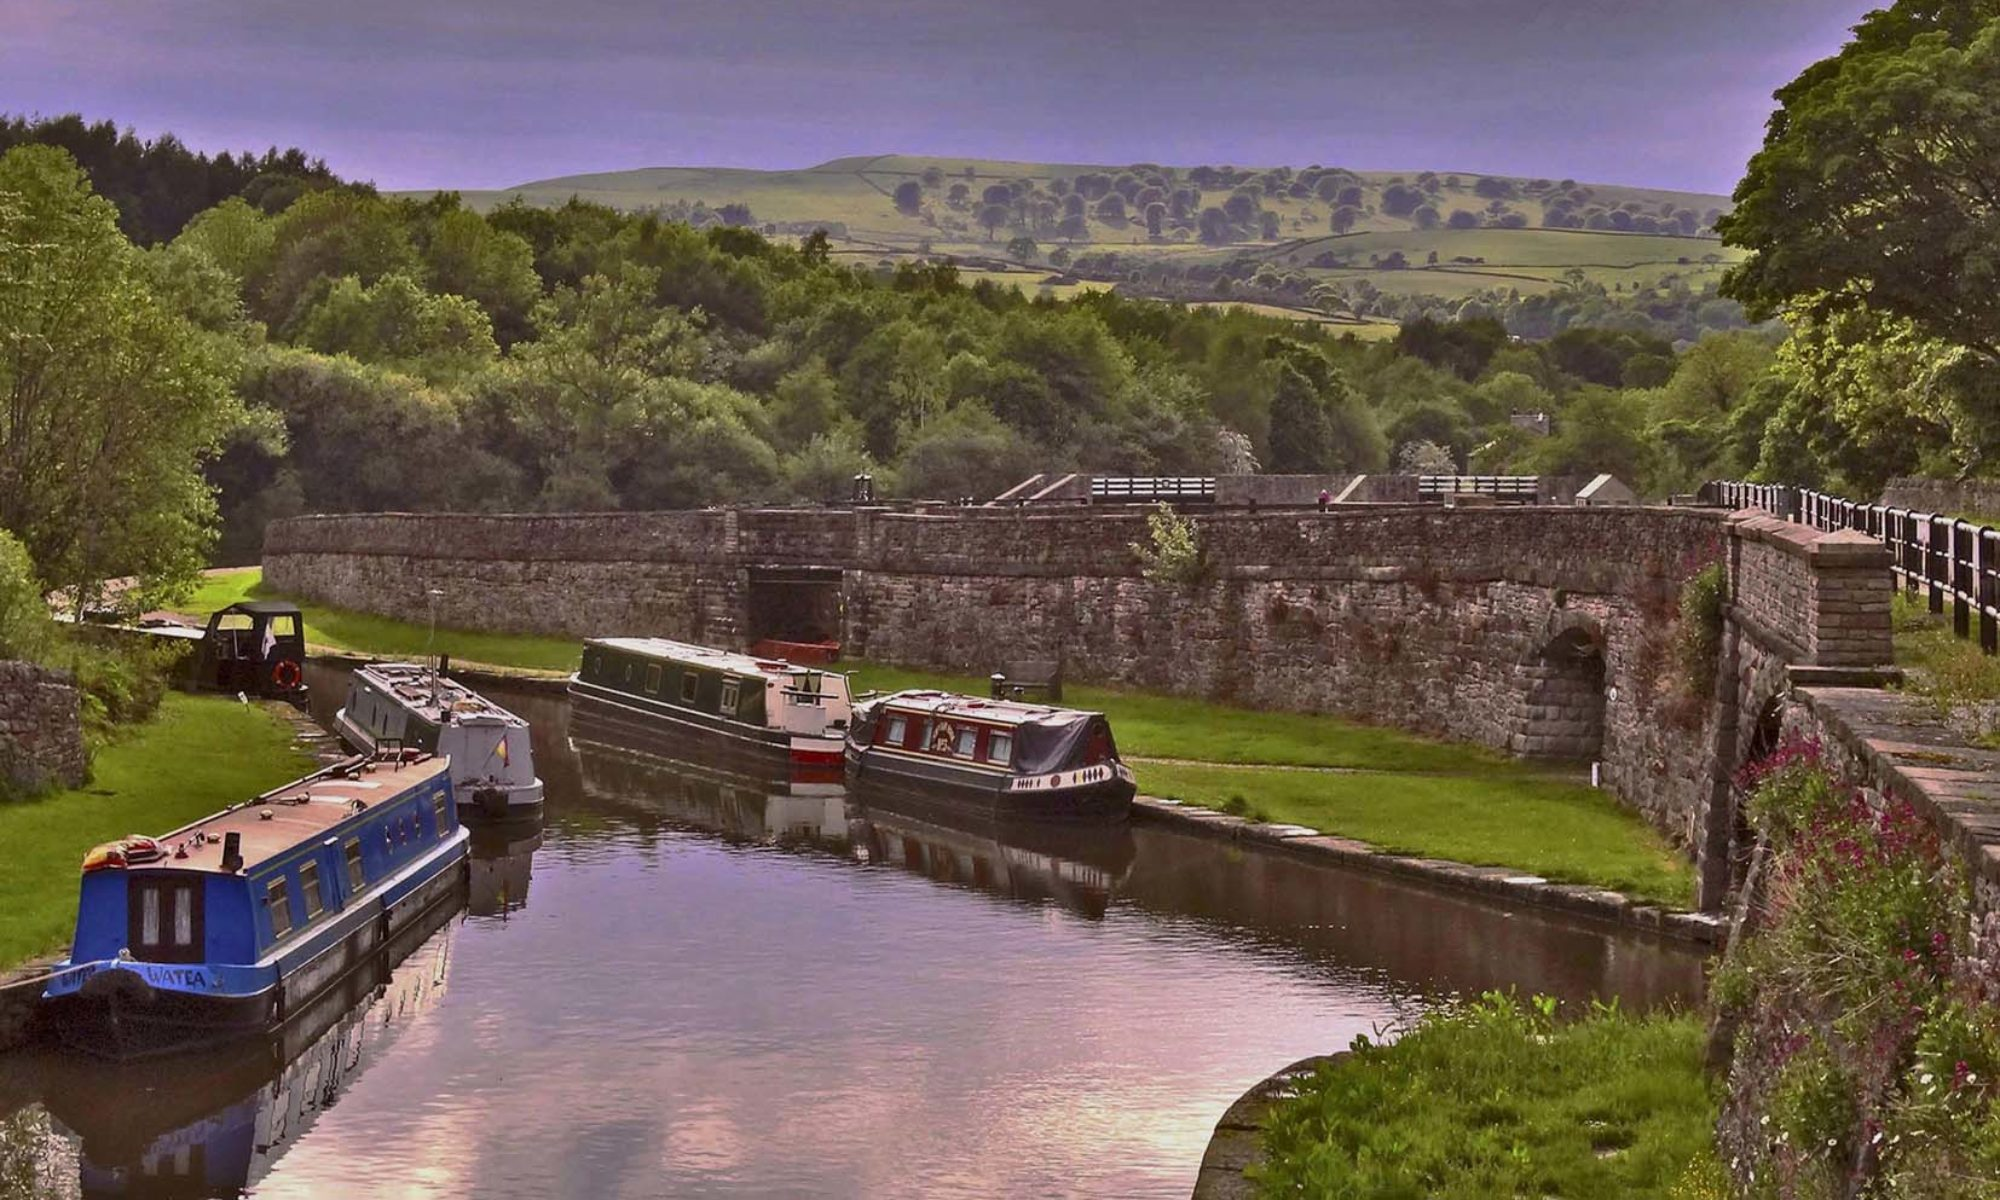 Bugsworth Basin Heritage Trust